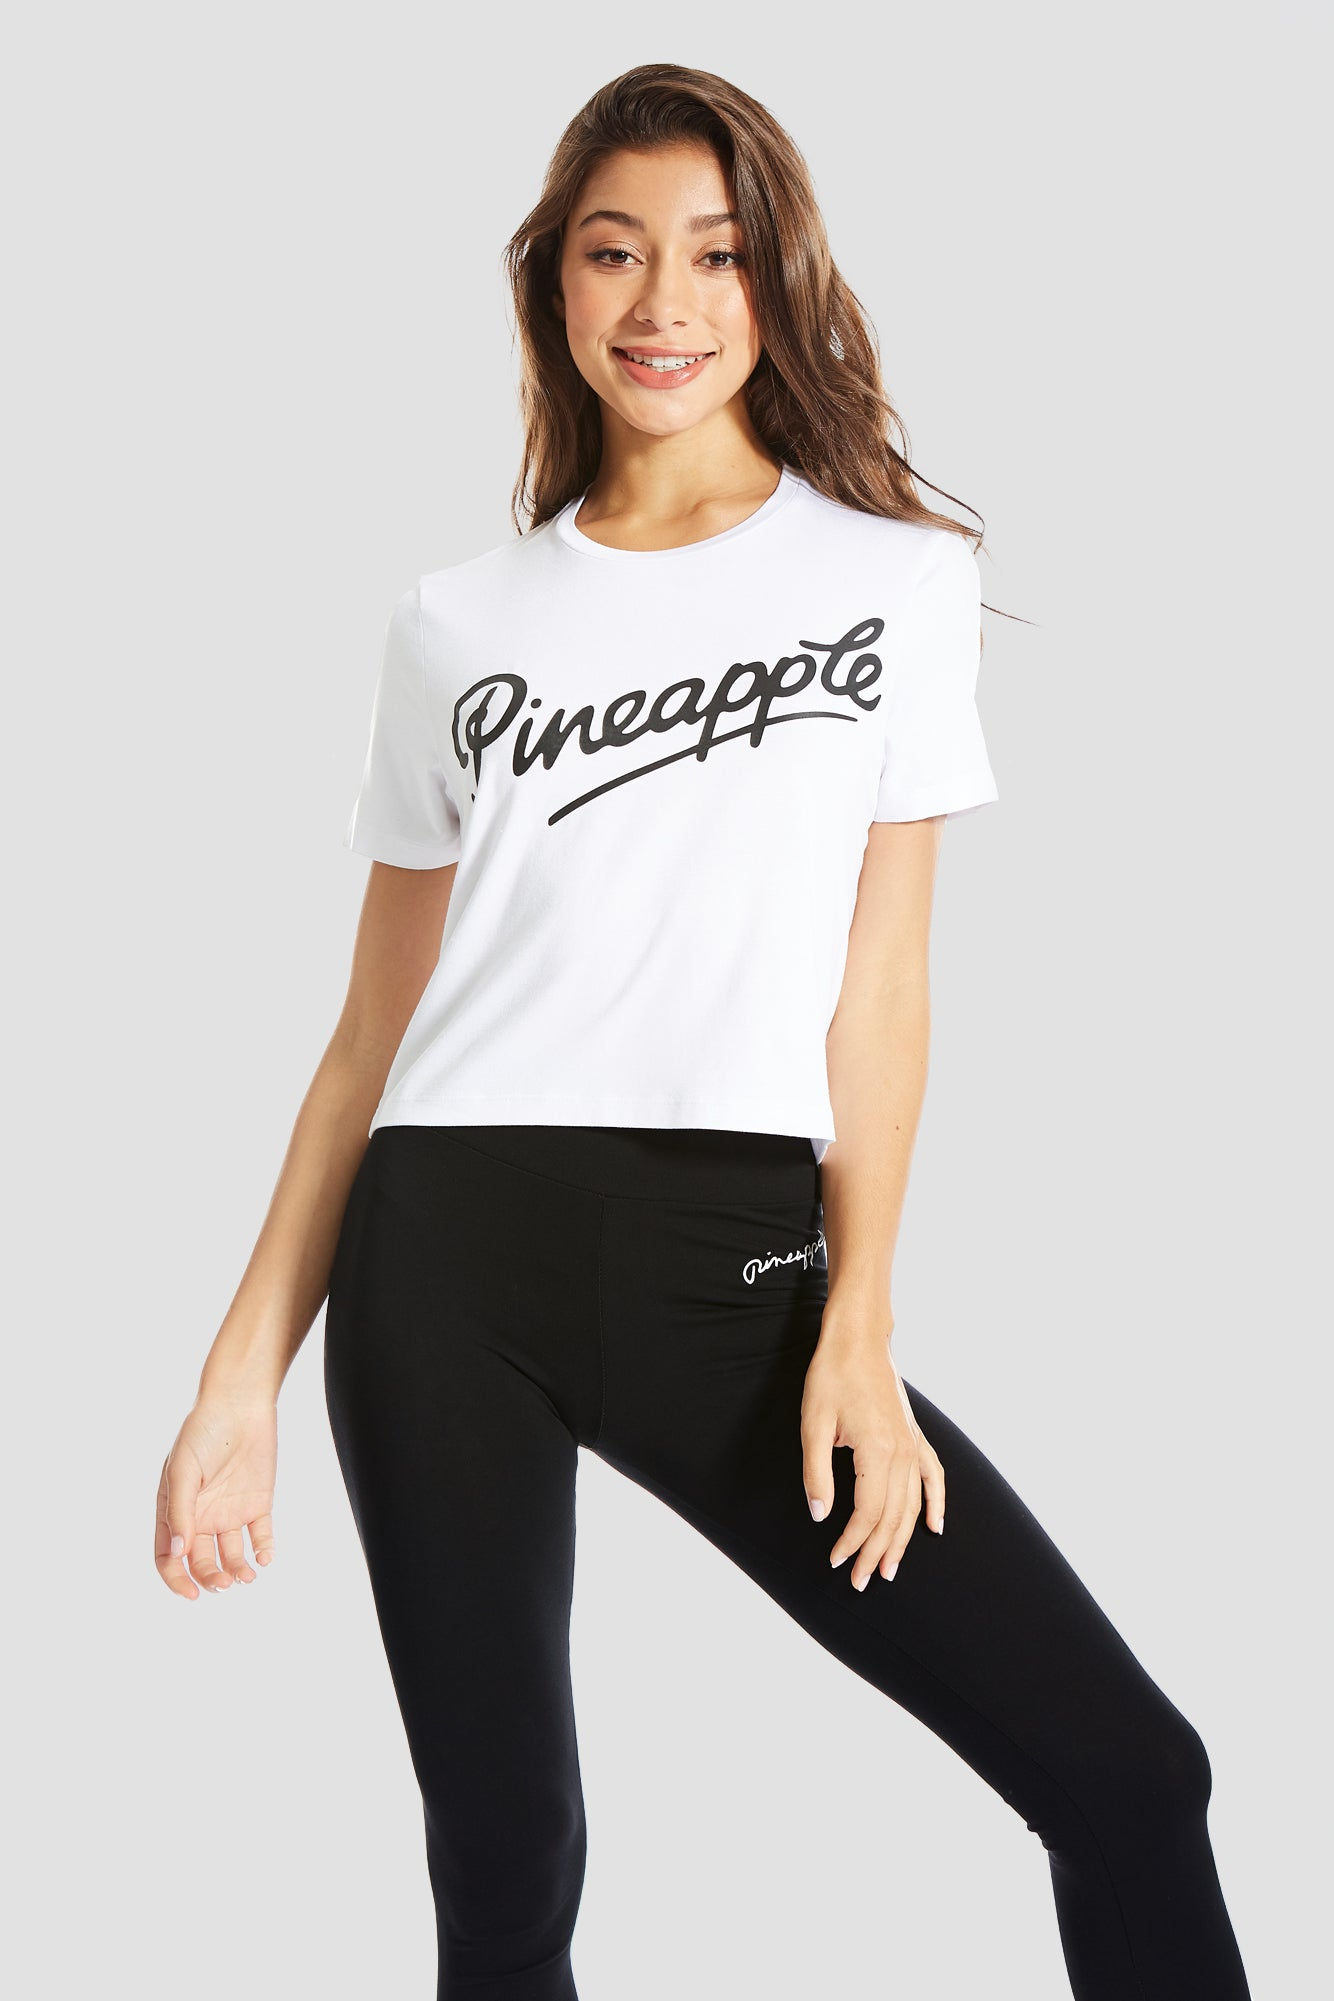 Pineapple Dancewear Women's White Crop T-Shirt